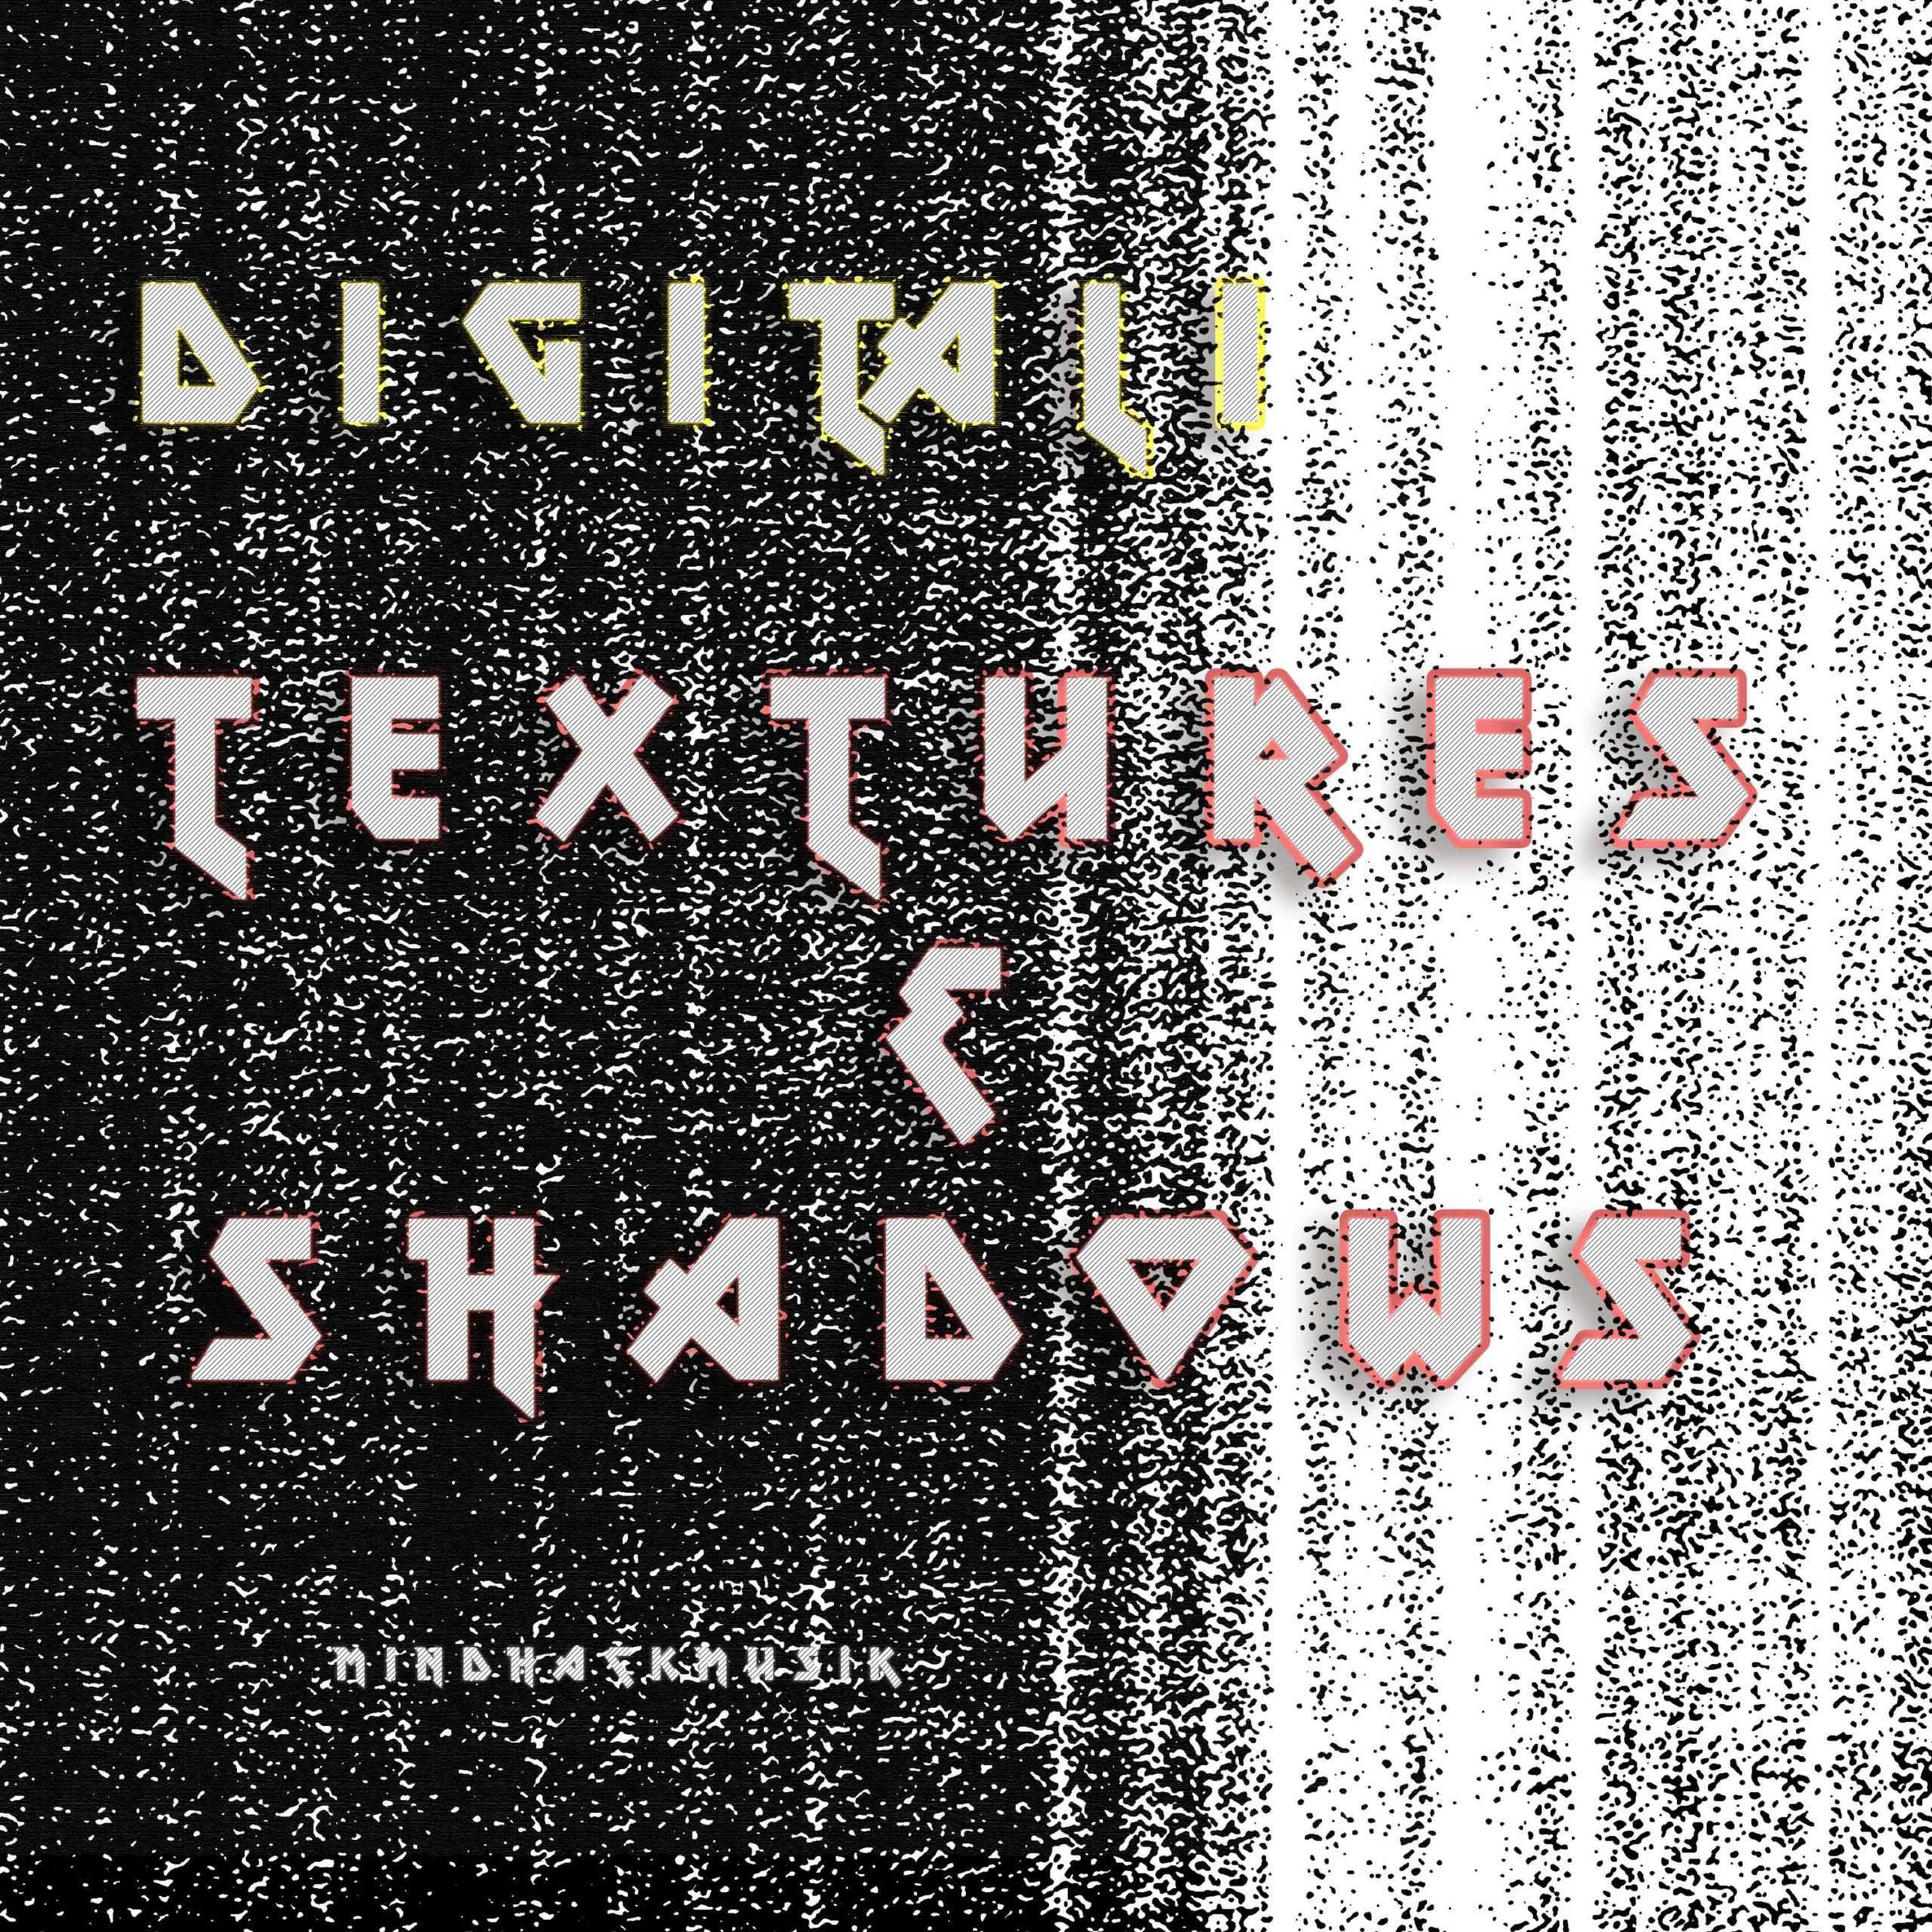 MHM009-digitali-textures-shadows